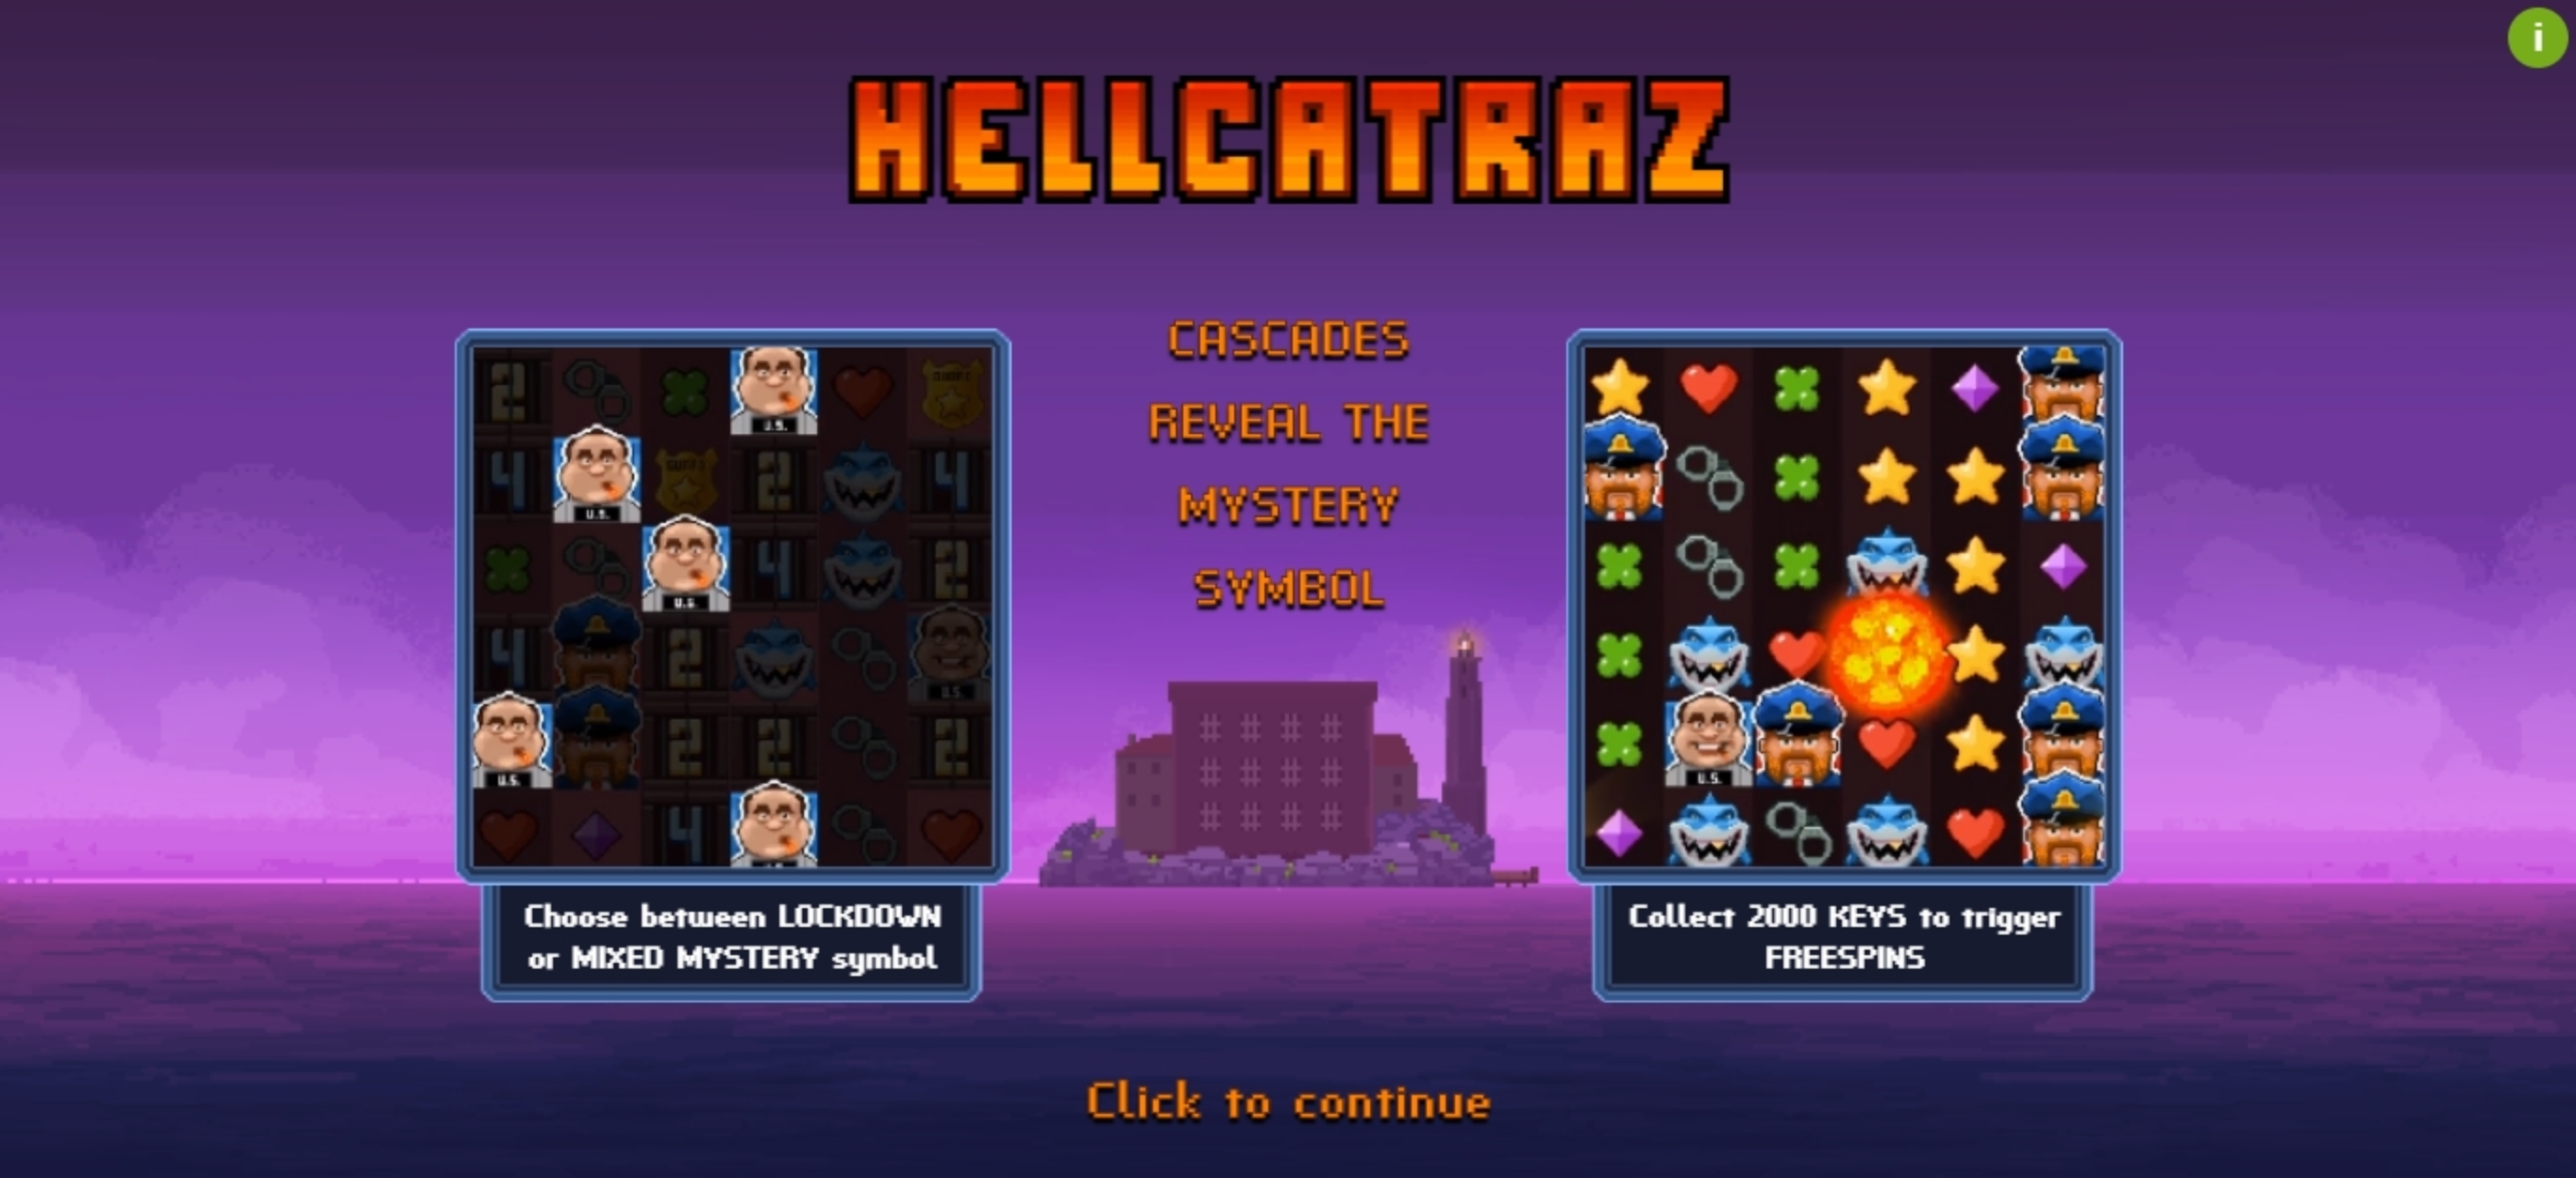 Play Hellcatraz Free Casino Slot Game by Relax Gaming